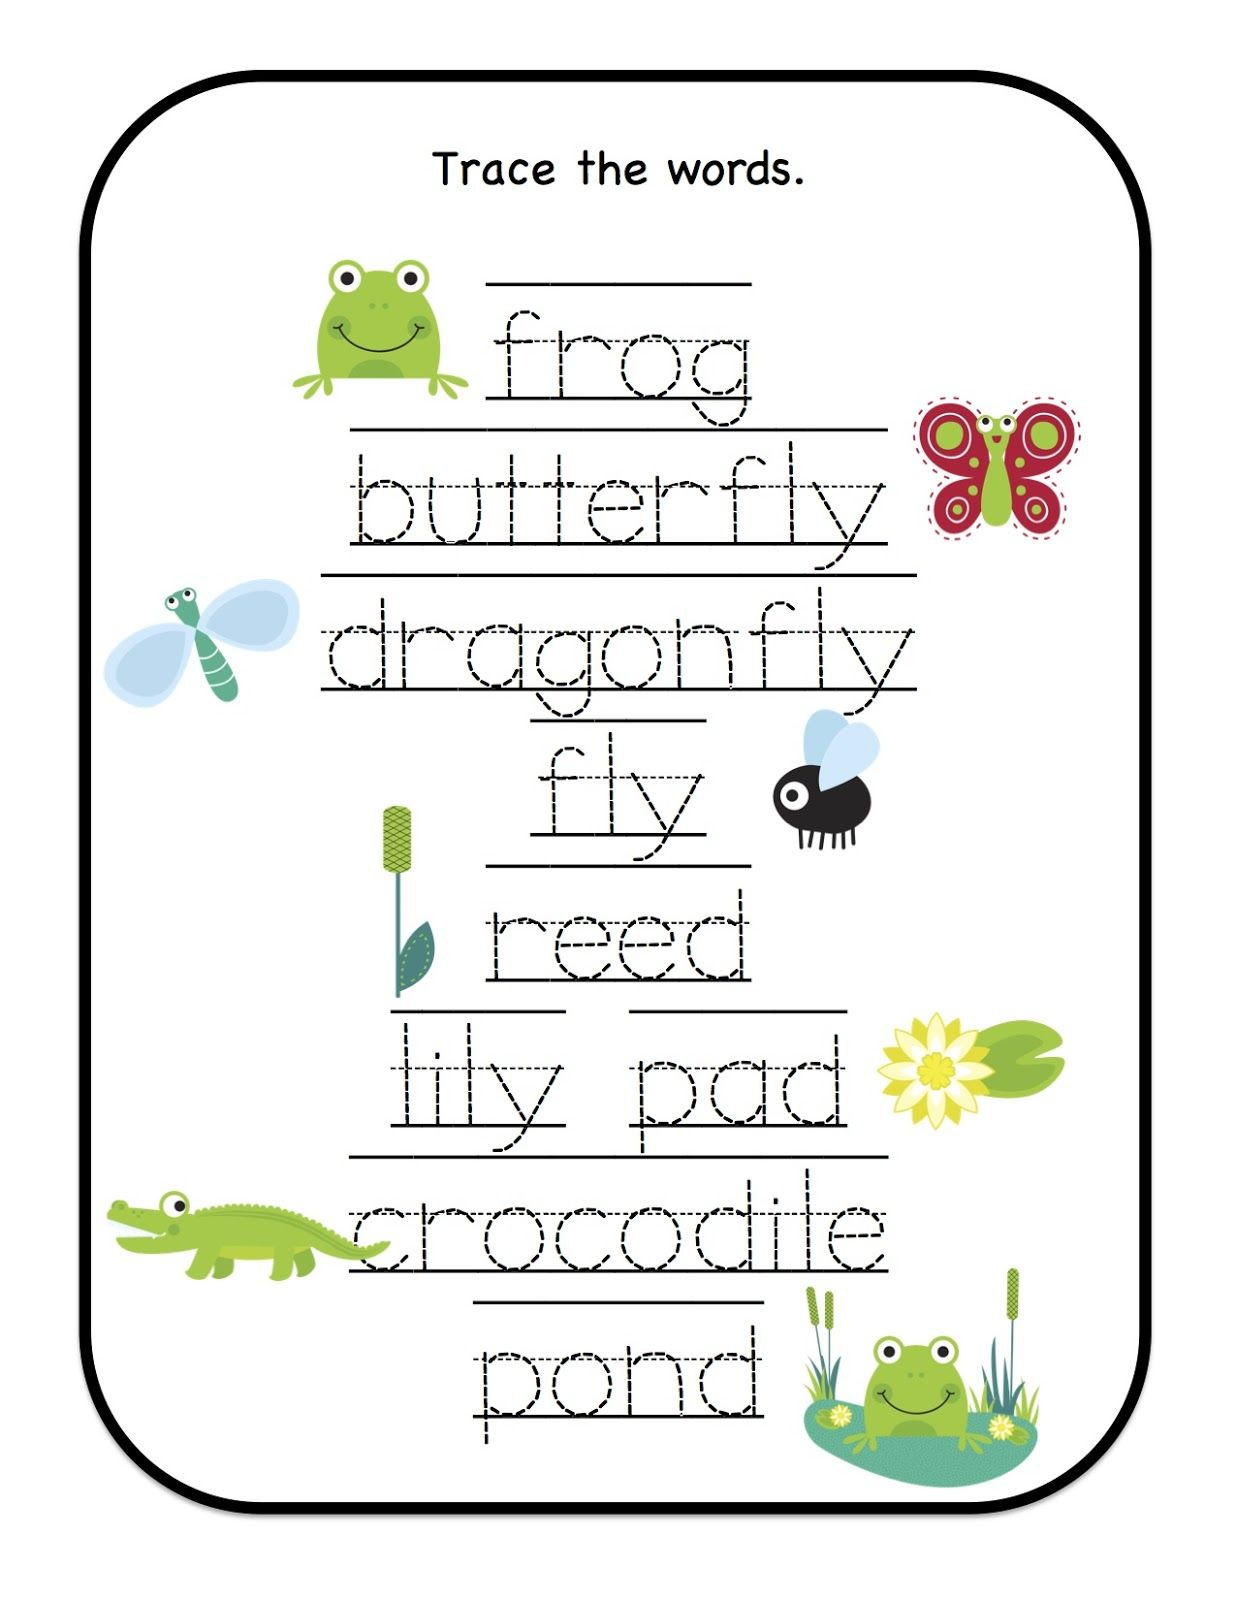 Preschool Printables Down By The Pond Printable Many Trace The Words Worksheets On Different